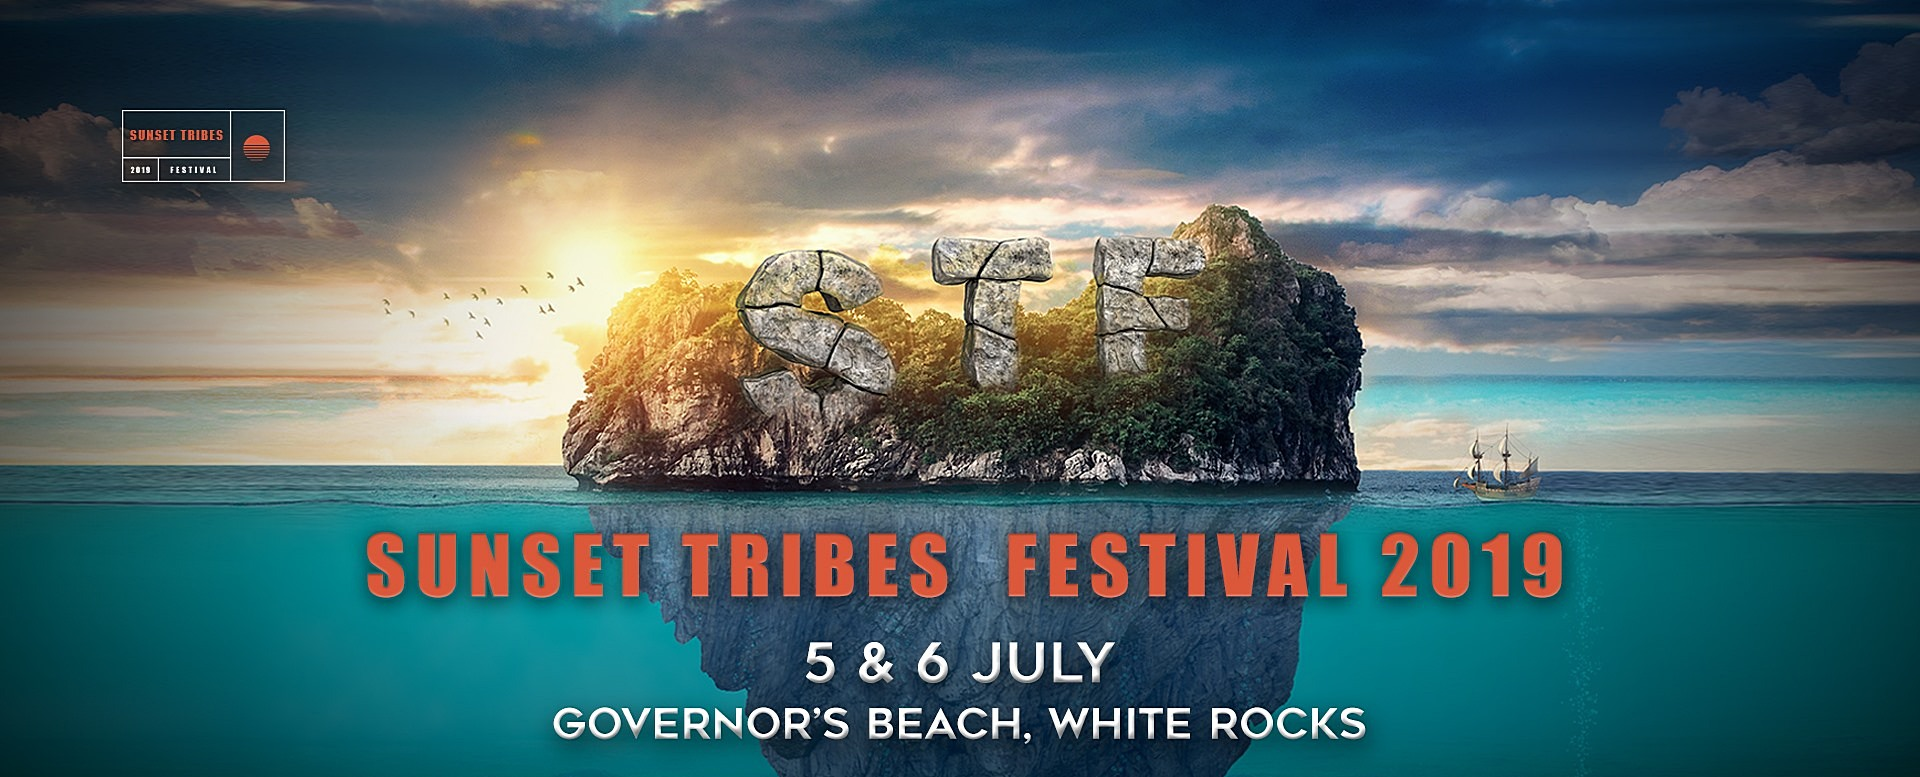 Sunset Tribes Festival